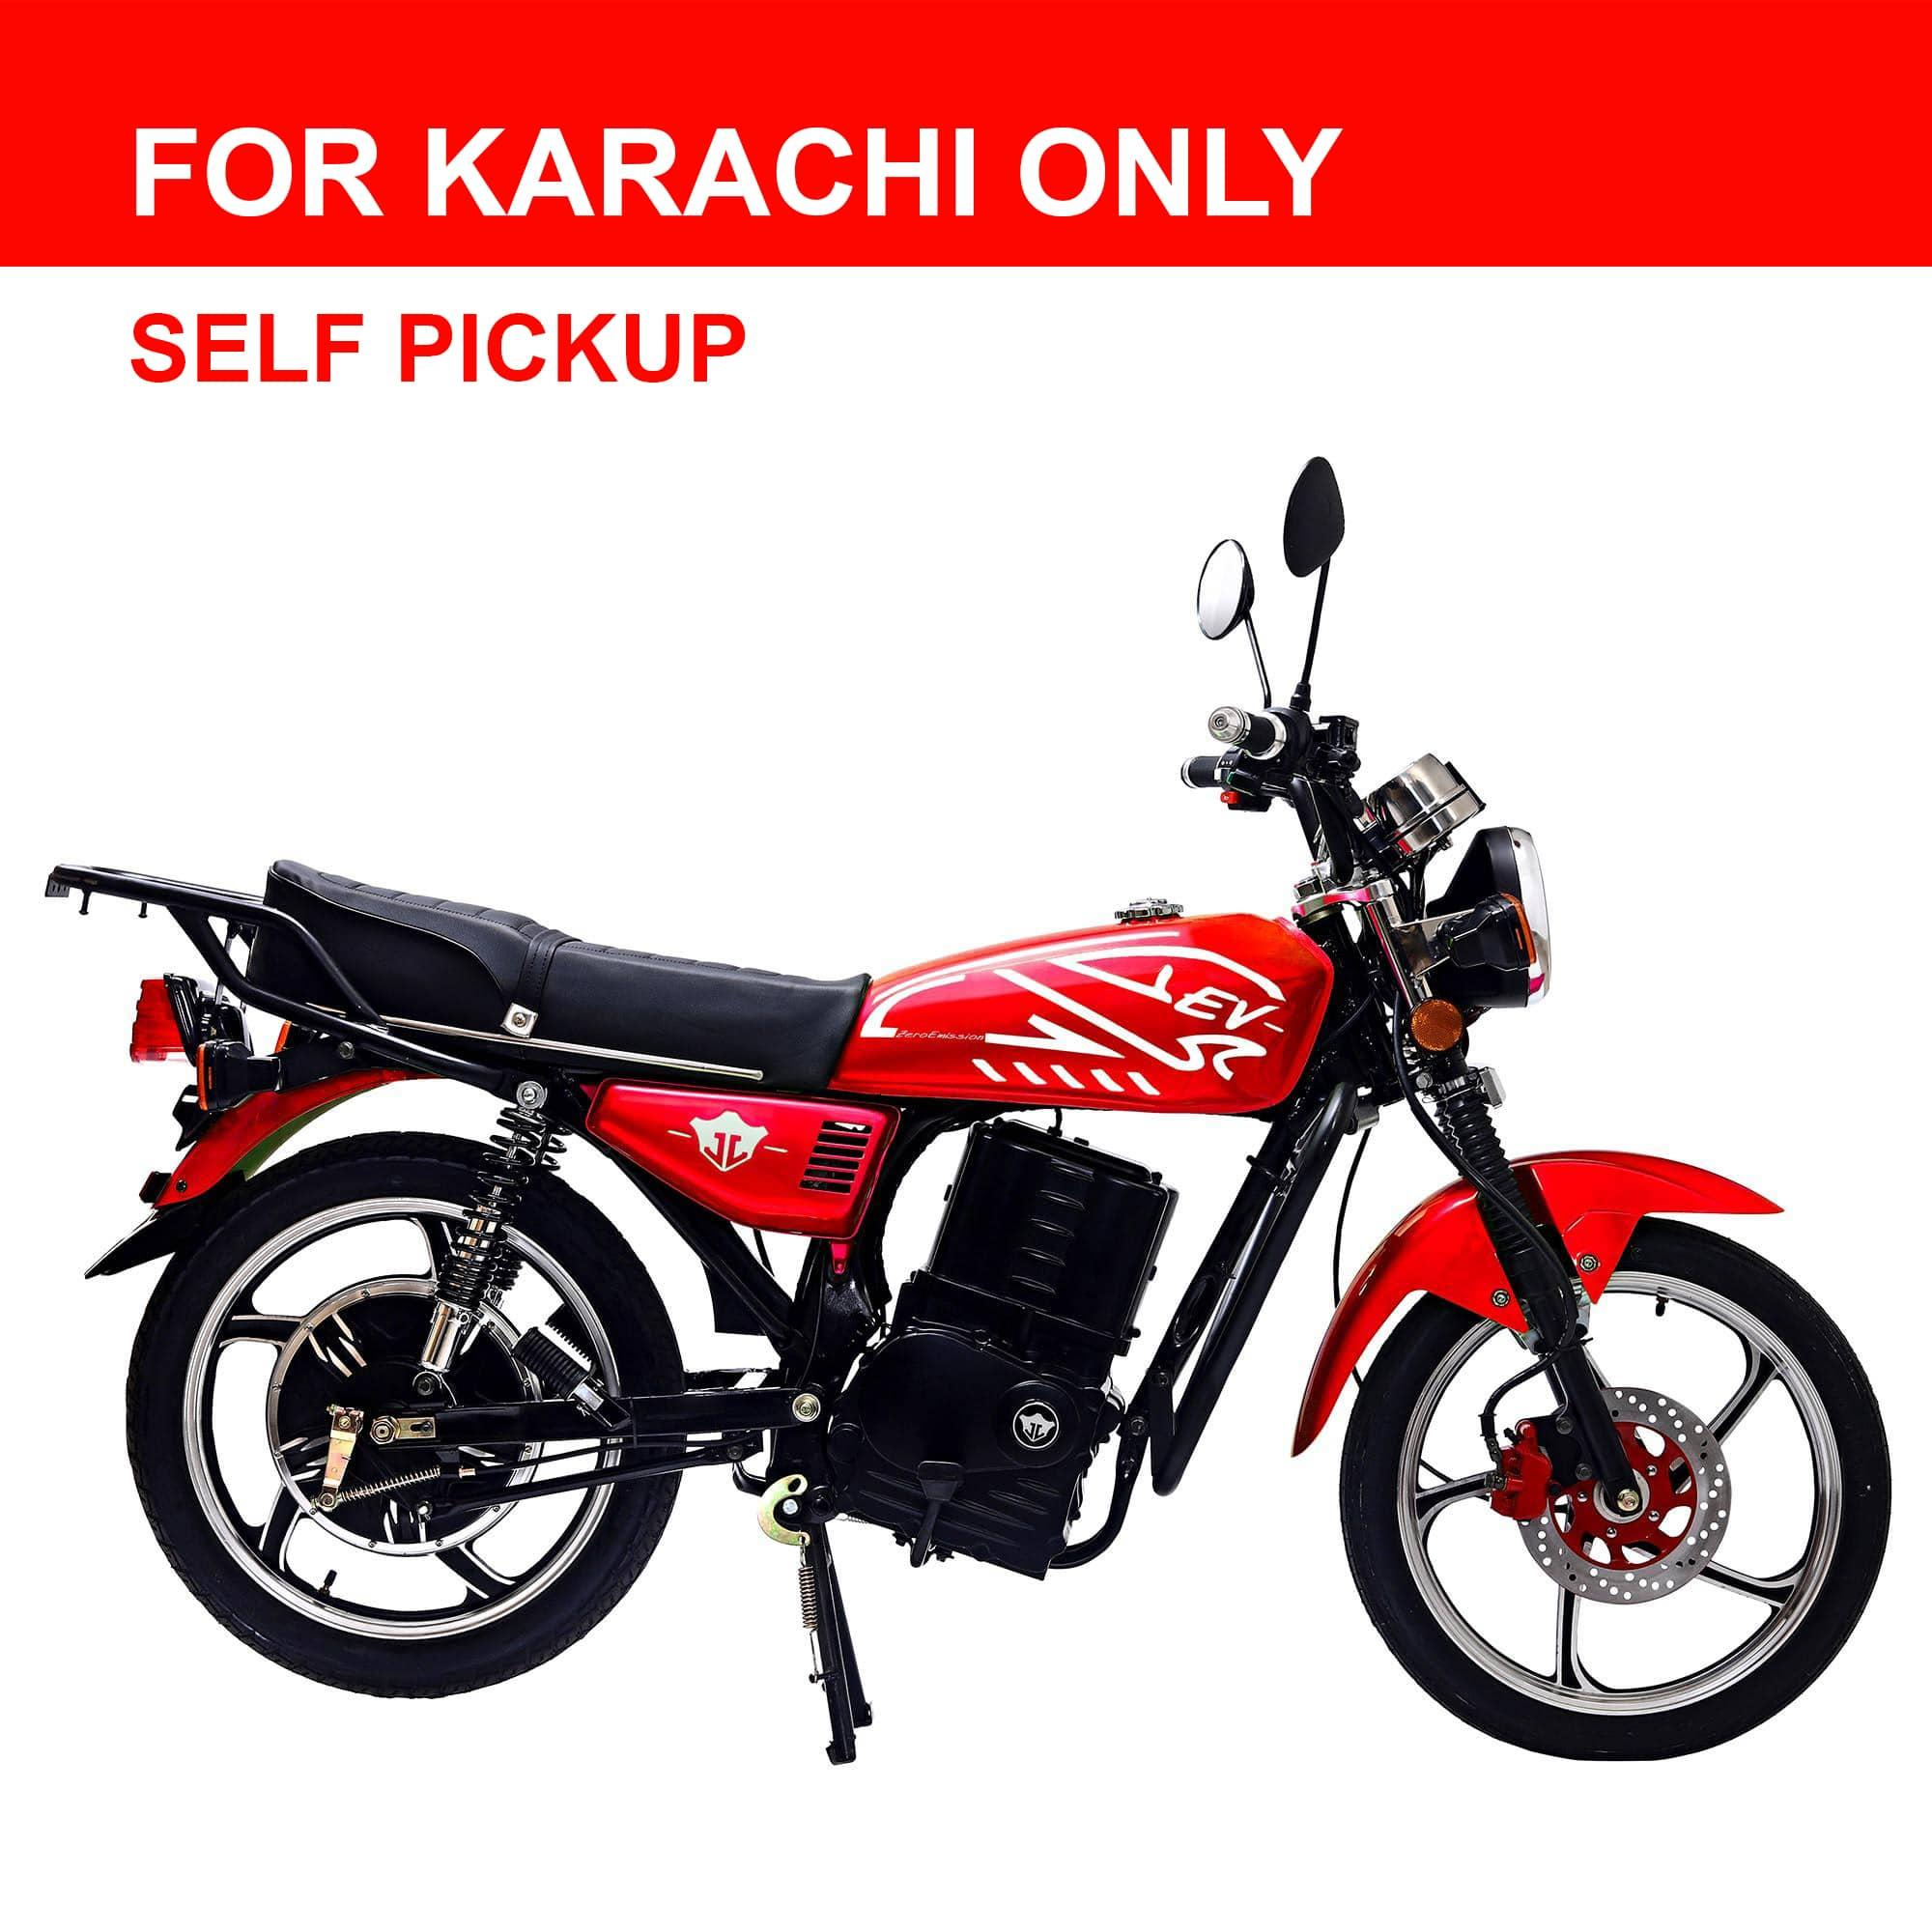 Sunra Electric Bike - 1500 Watt - Red (Karachi Only)